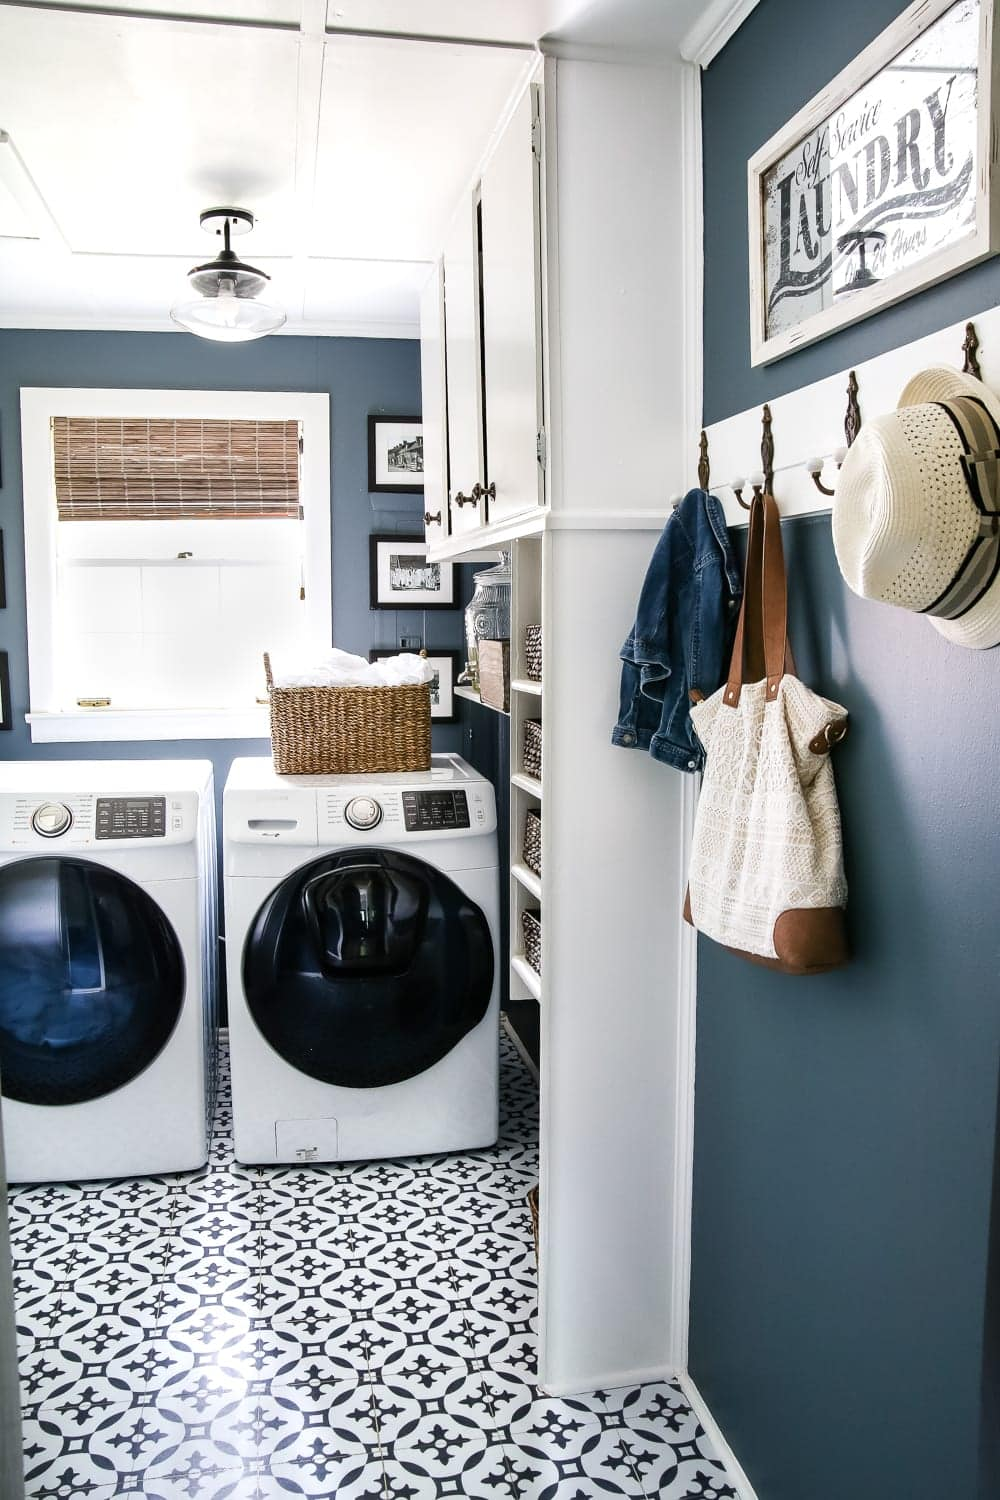 Organized laundry room + tips for decluttering and free checklist printable